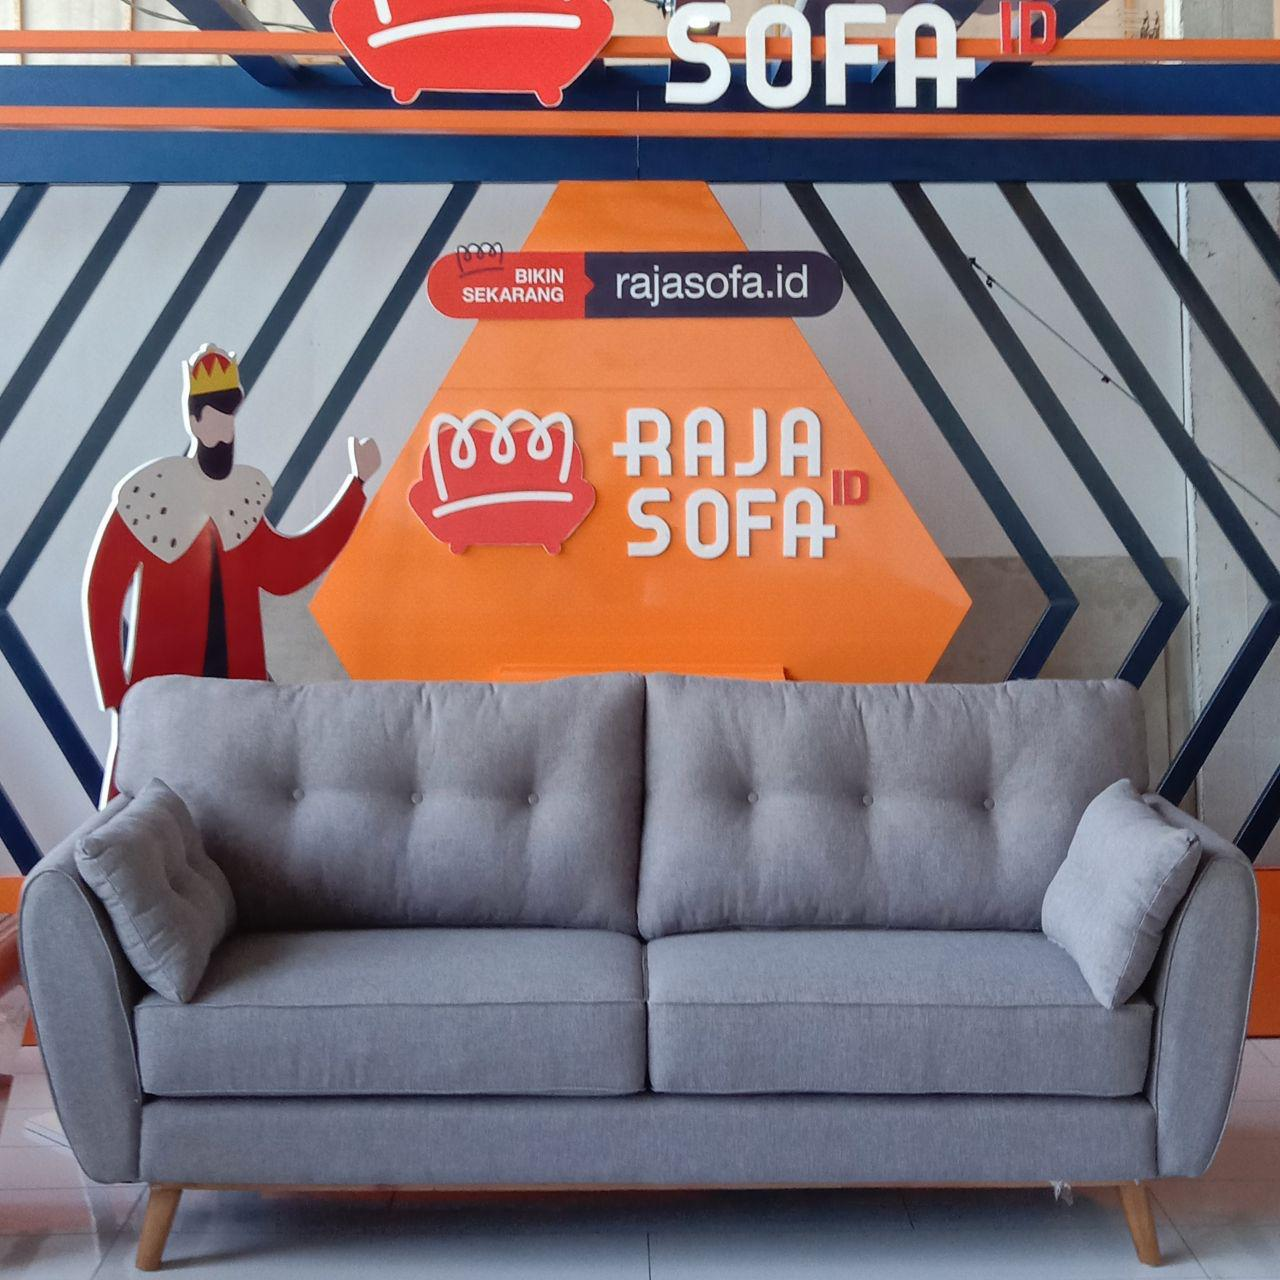 Raja sofa pekanbaru bikin sofa anti-mainstream